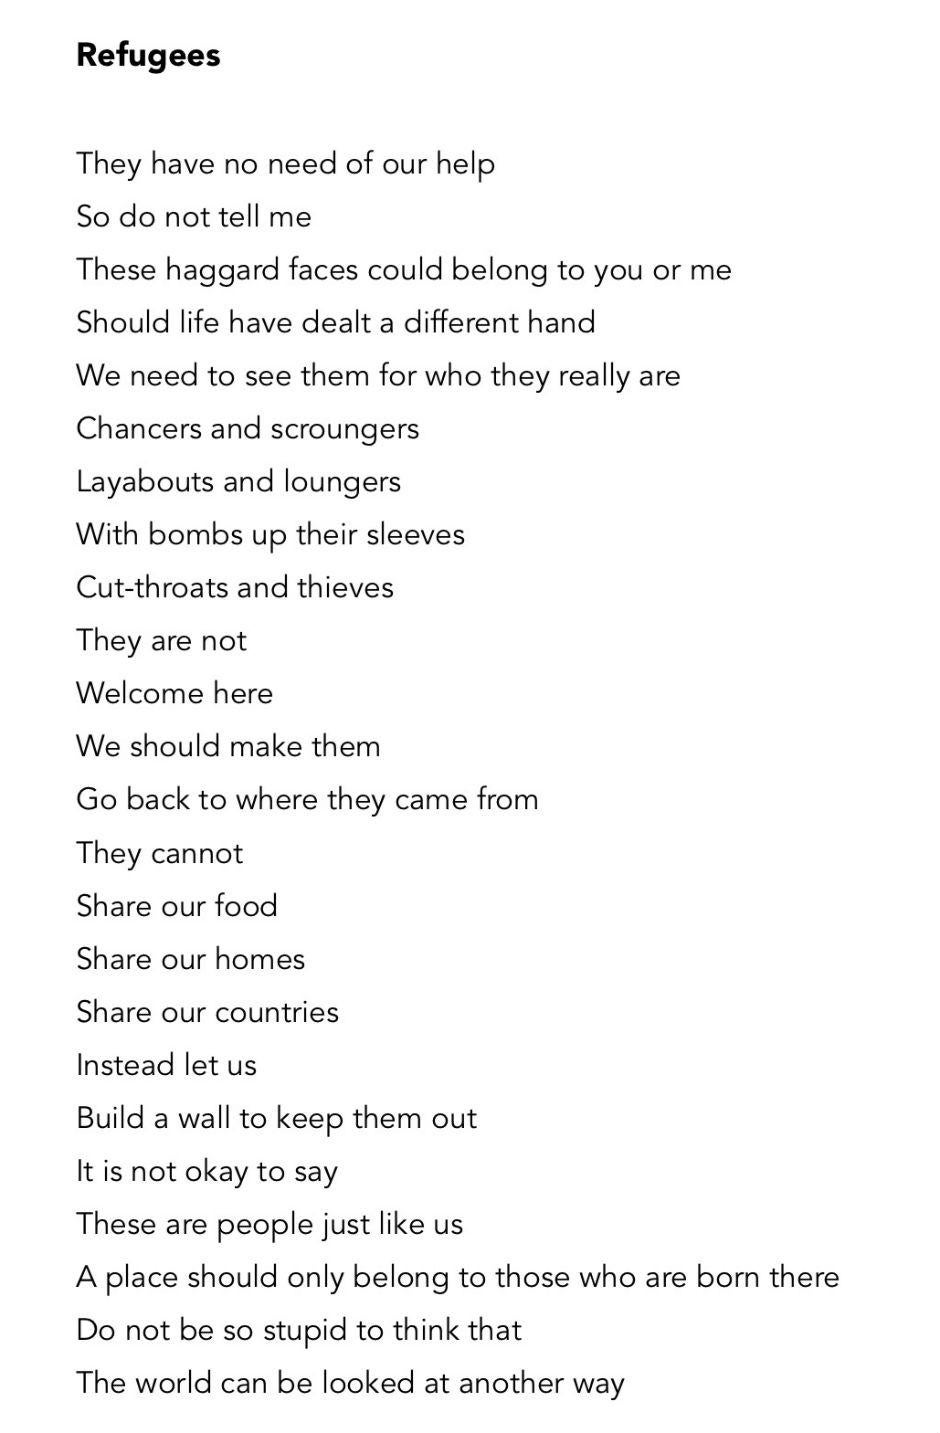 This Dark Poem About Refugees Has A Beautiful Hidden Meaning